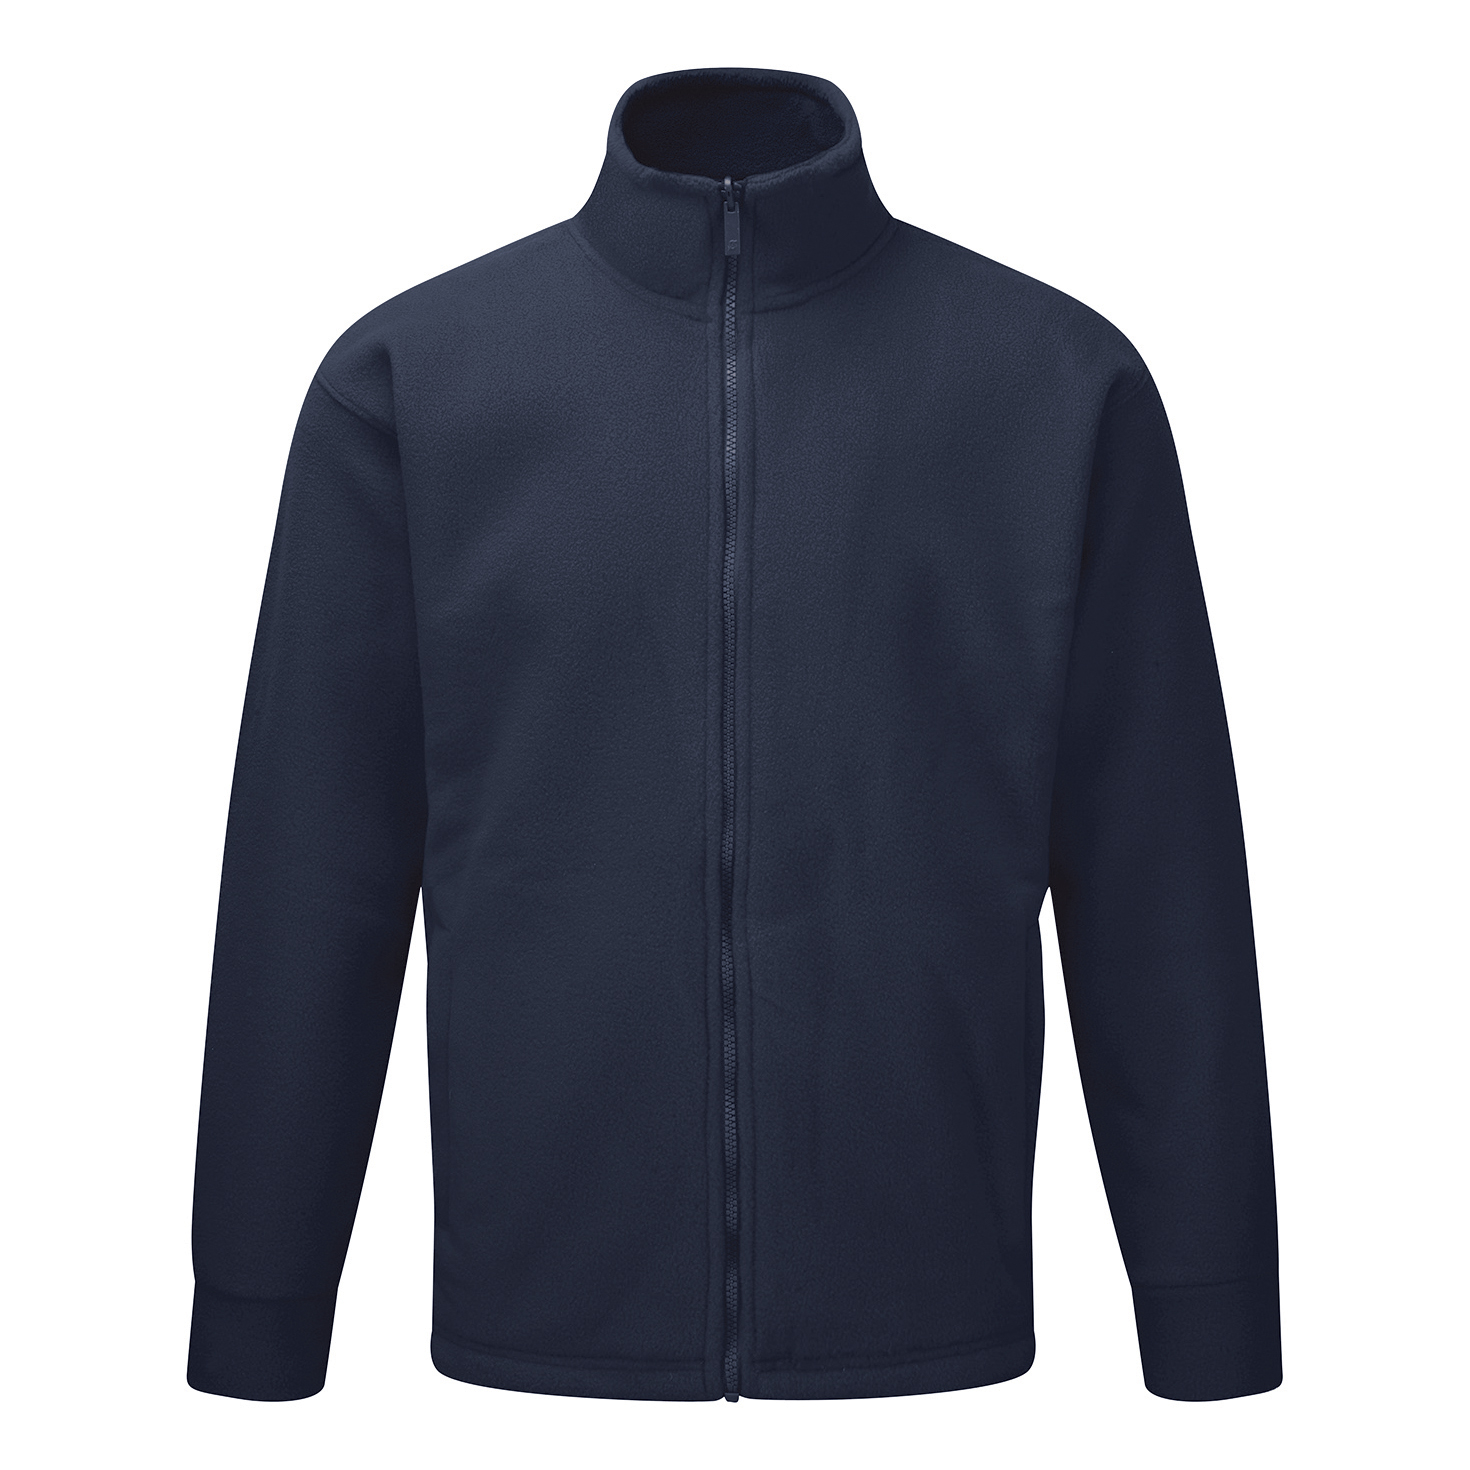 Classic Fleece Jacket Elasticated Cuffs Full Zip Front 4XL Navy Blue Ref FLJN4XL 1-3 Days Lead Time